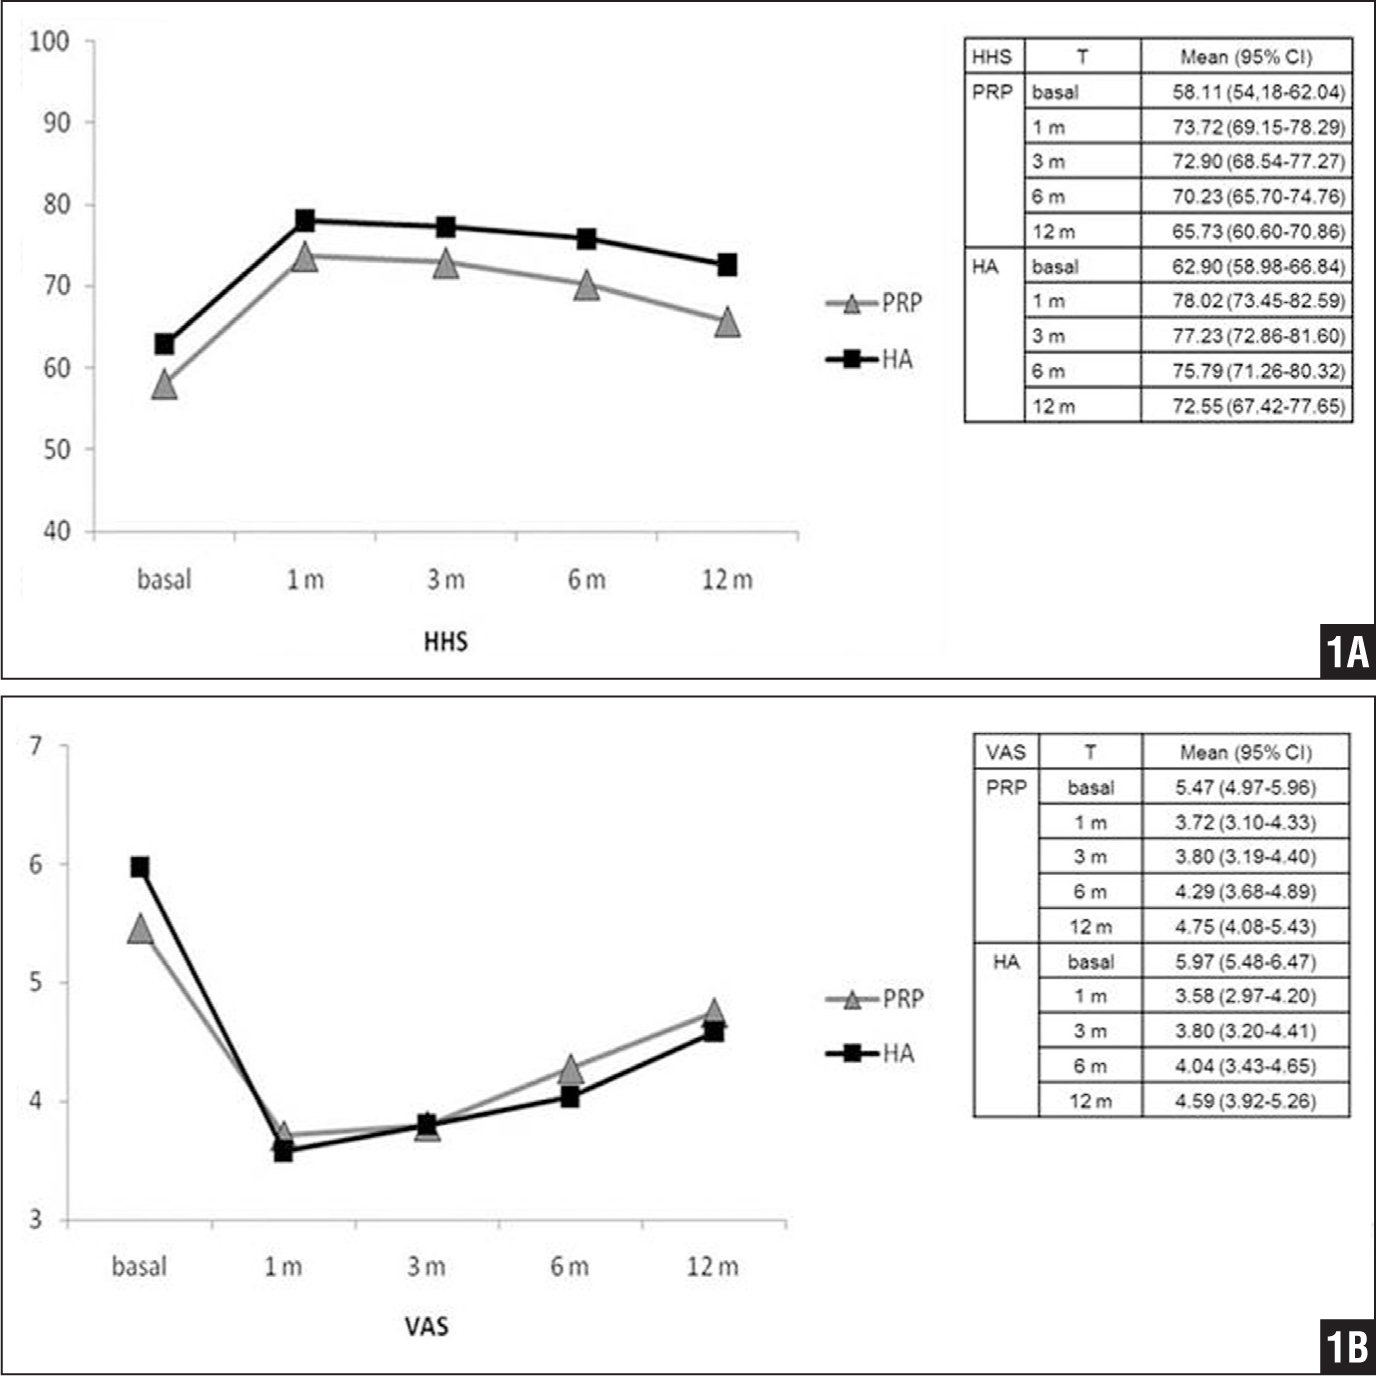 Graphs showing Harris Hip Score (HHS) (A) and visual analog scale (VAS) score (B) evolution at different follow-up times (T) in patients treated with platelet-rich plasma (PRP) vs hyaluronic acid (HA). Abbreviation: CI, confidence interval.